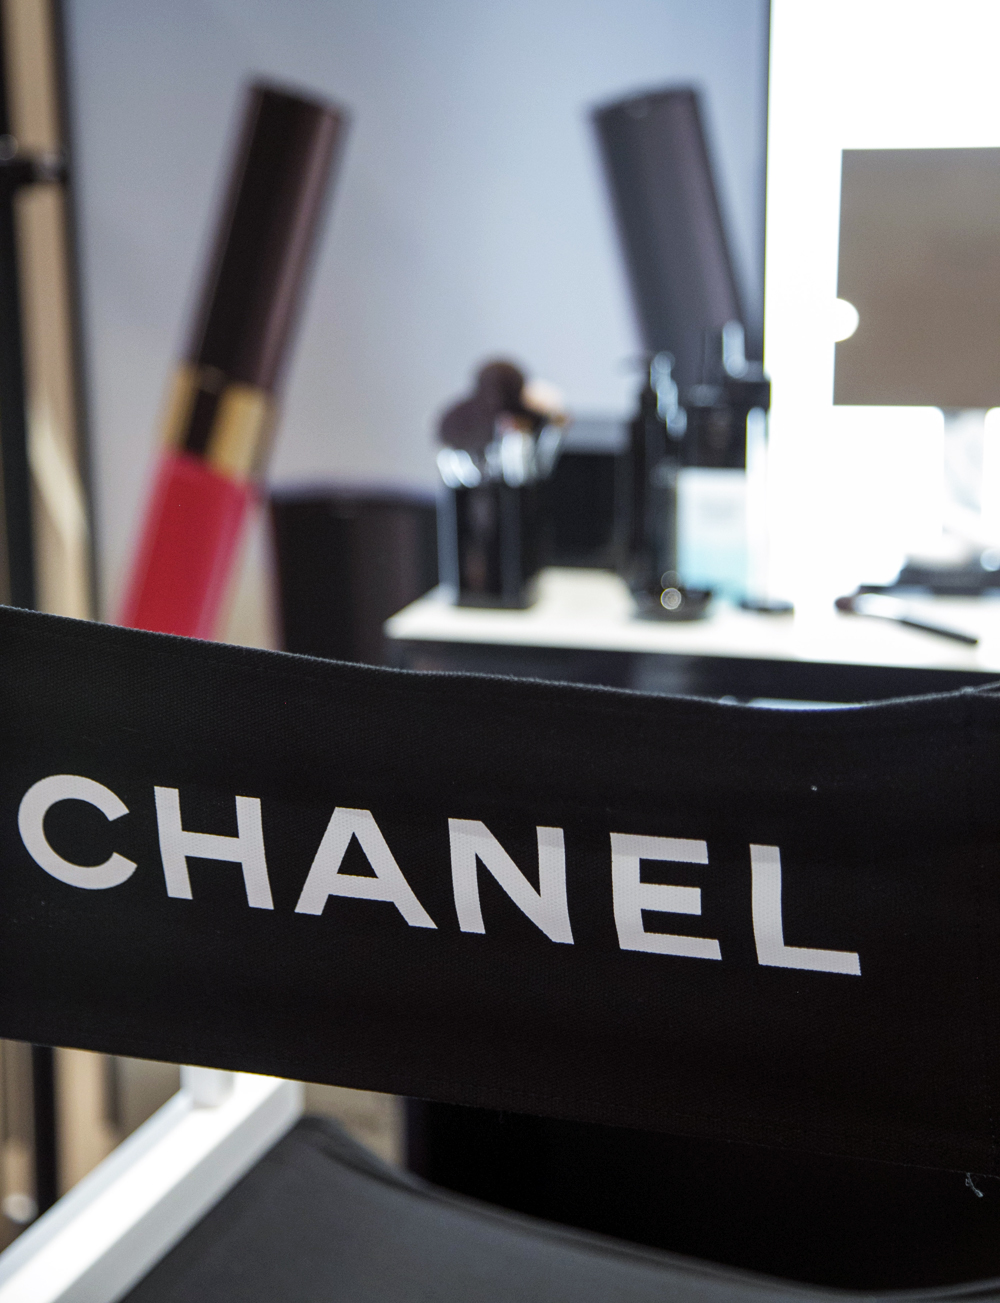 chanel chair